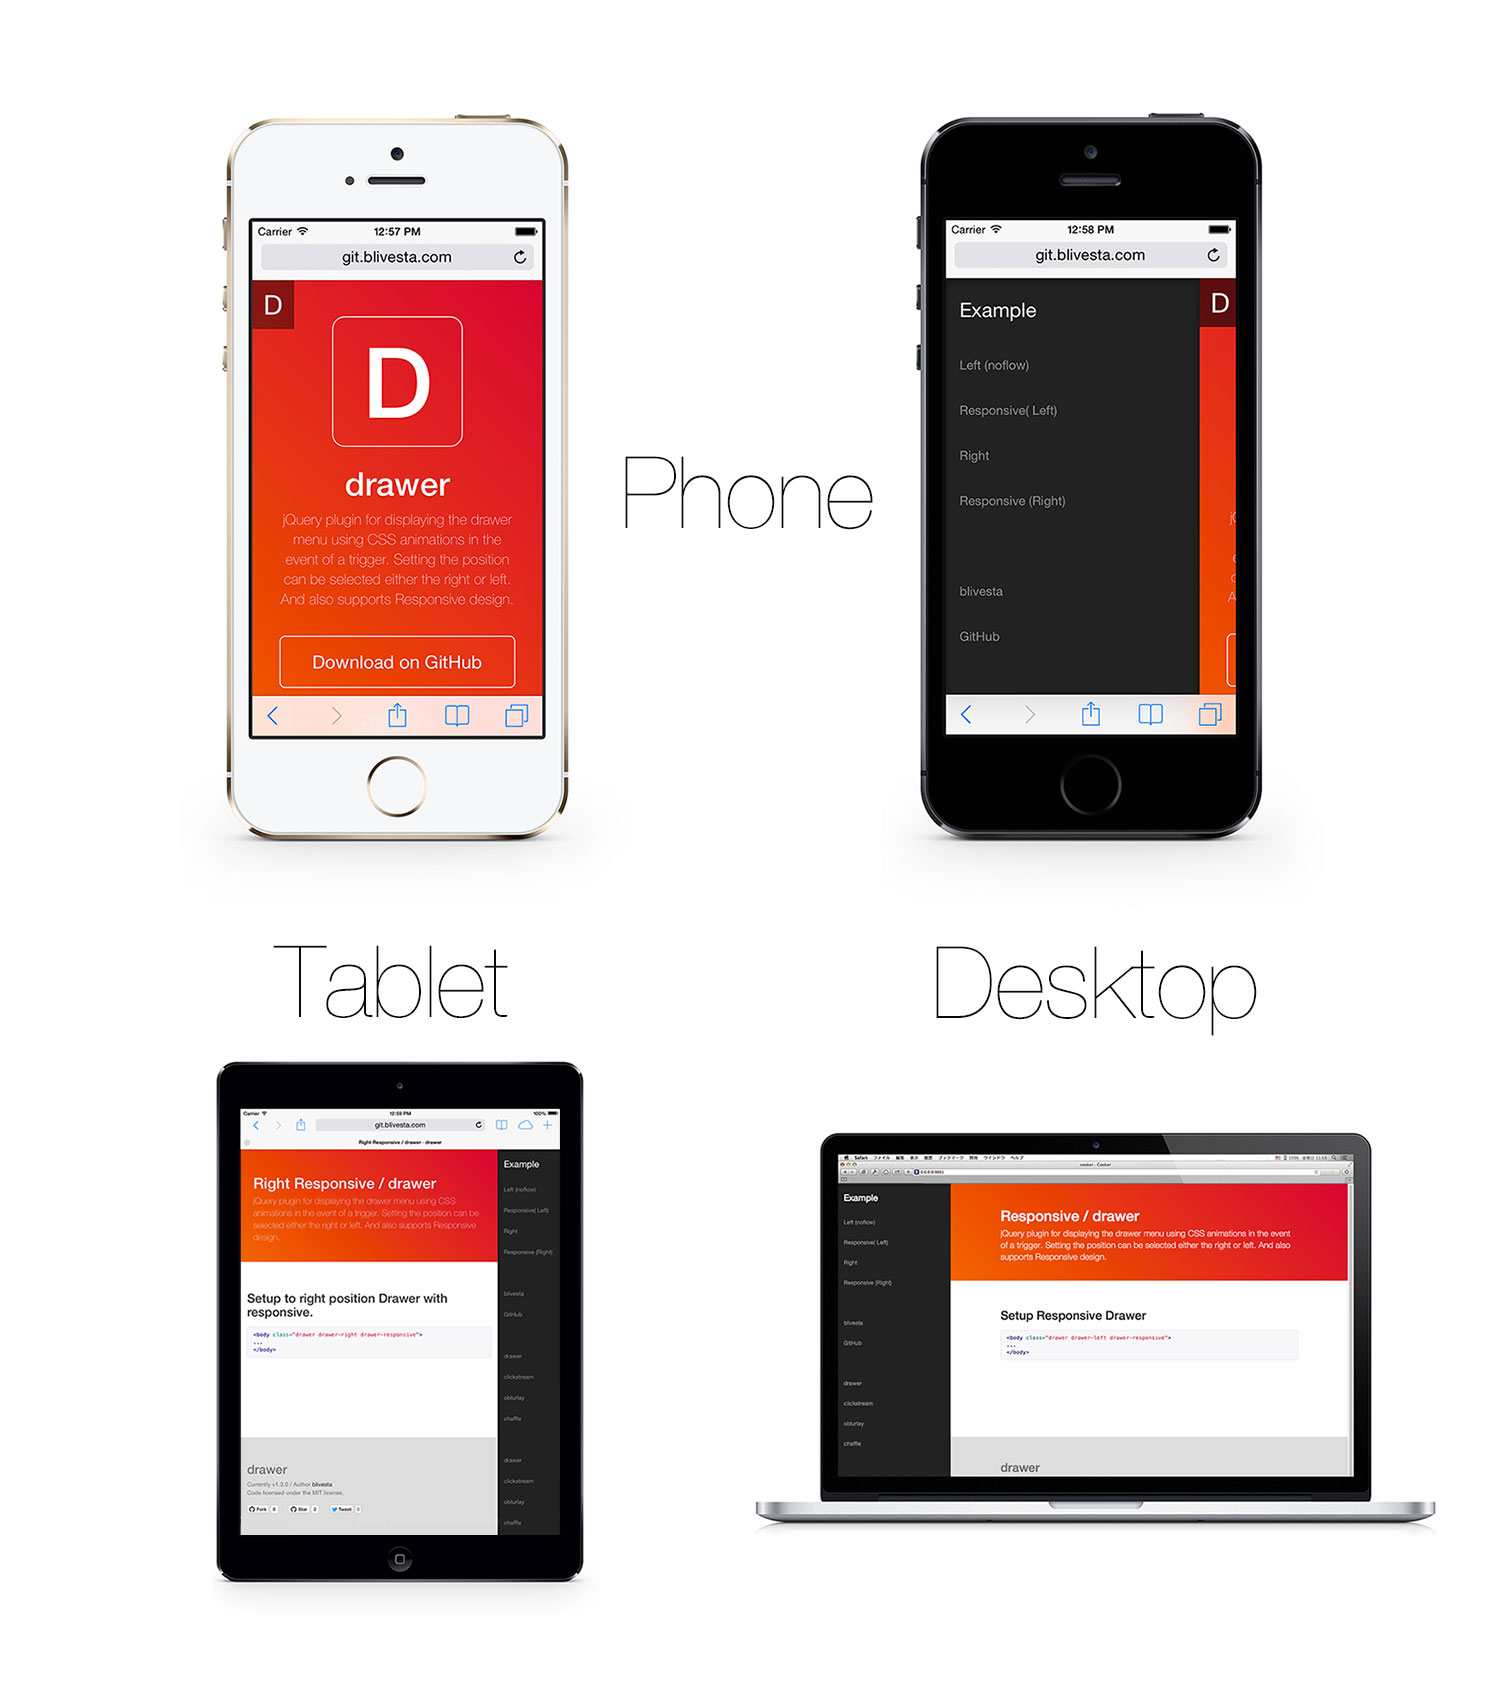 Drawer - Drawer is a responsive side-menu for your Web projects